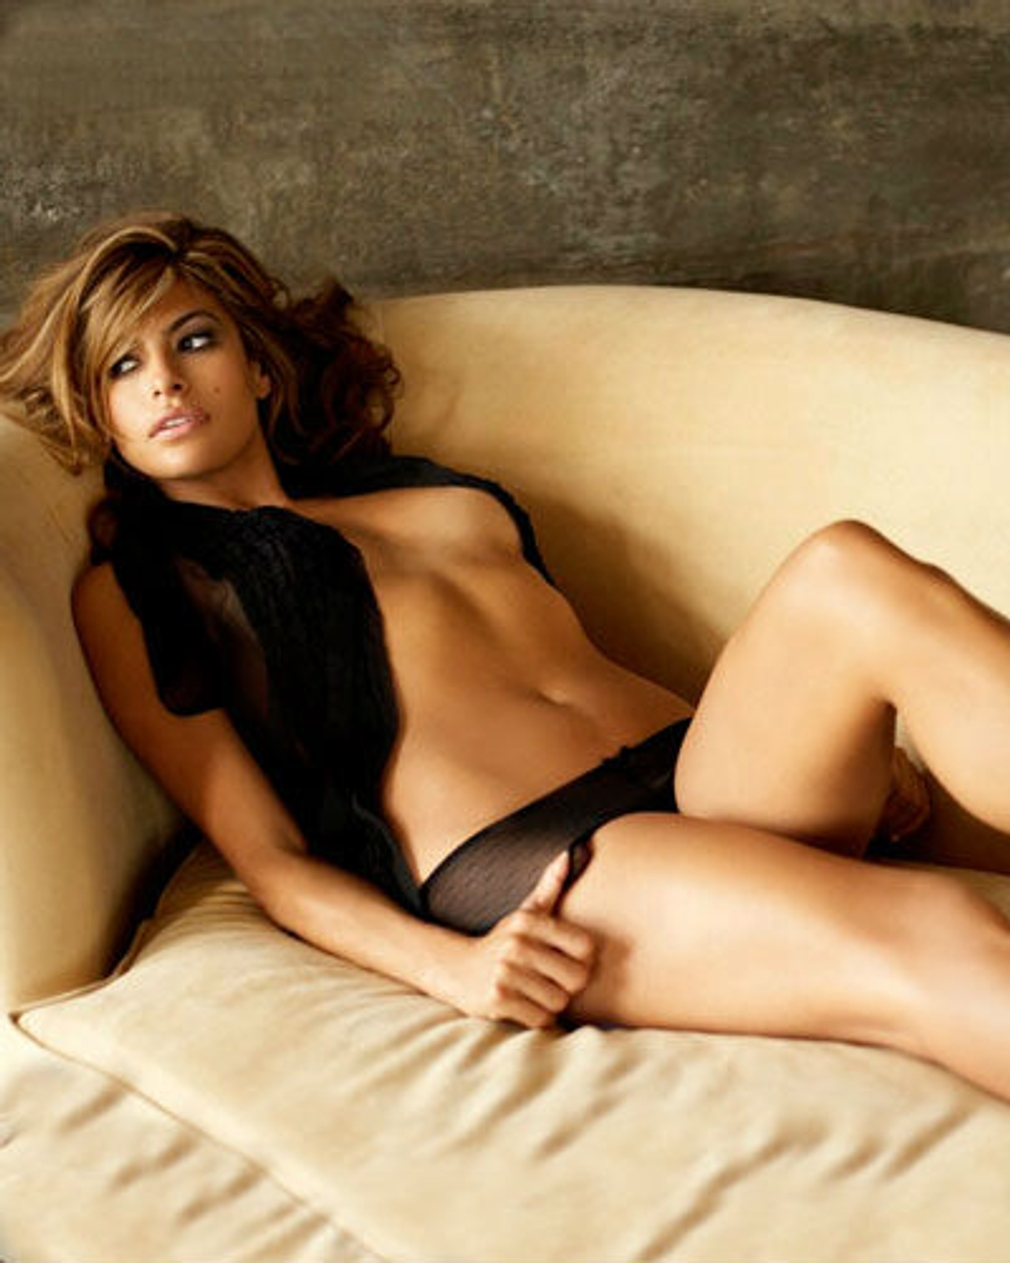 Naked puctures of eva mendez